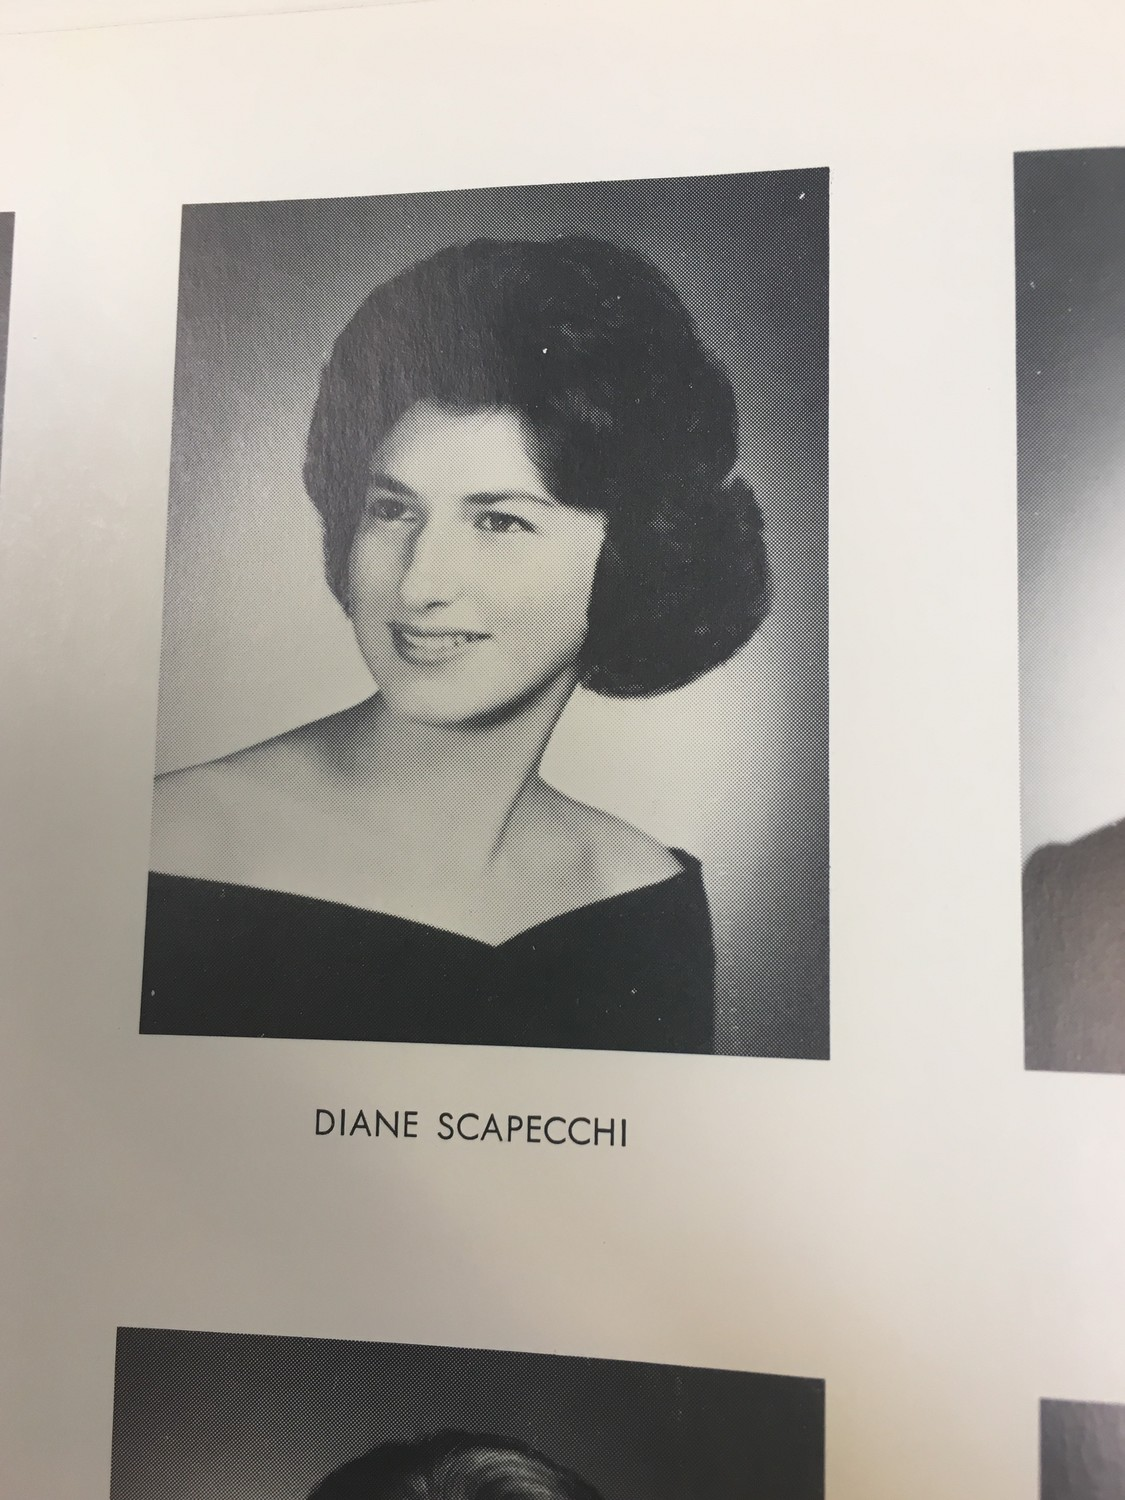 Lorraine Sandeen suggested that the wedding photo that is hanging up at Brancard's Delicatessan, at left, may be of Diane Scapecchi, whom she graduated Central High School in 1962.